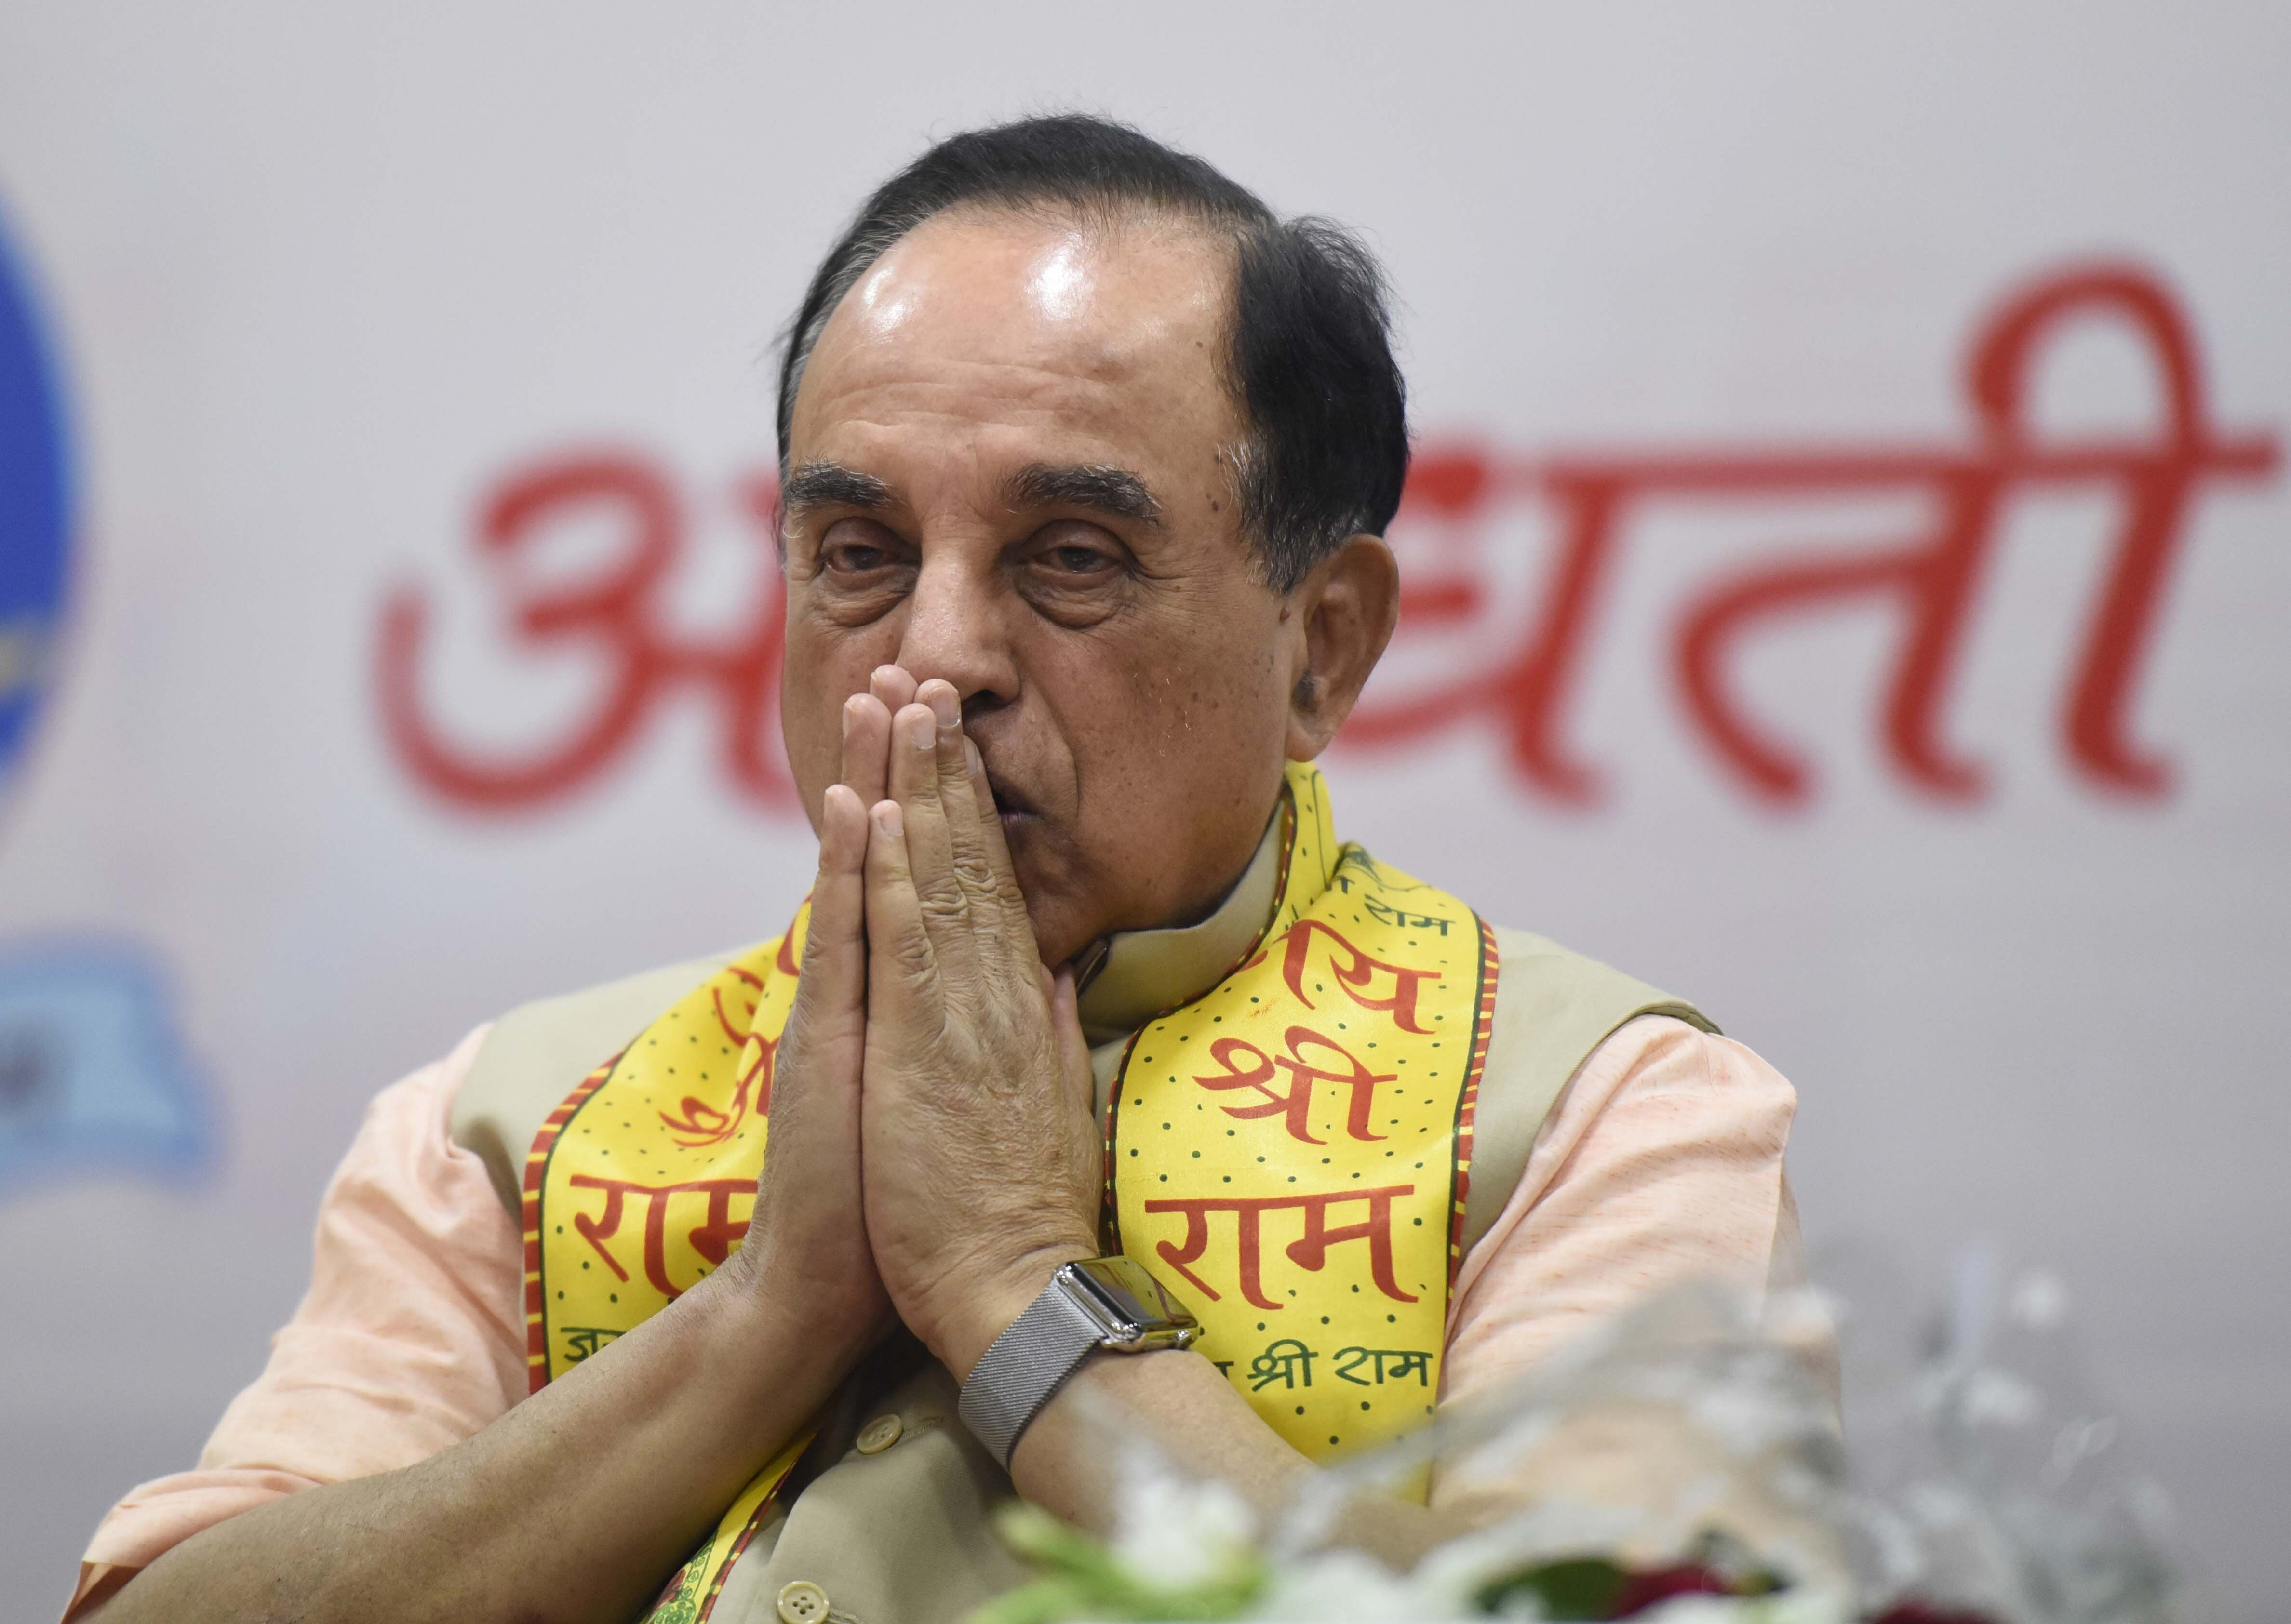 Subramanian Swamy: If BJP Gets 220-230, Modi May Not Be Prime